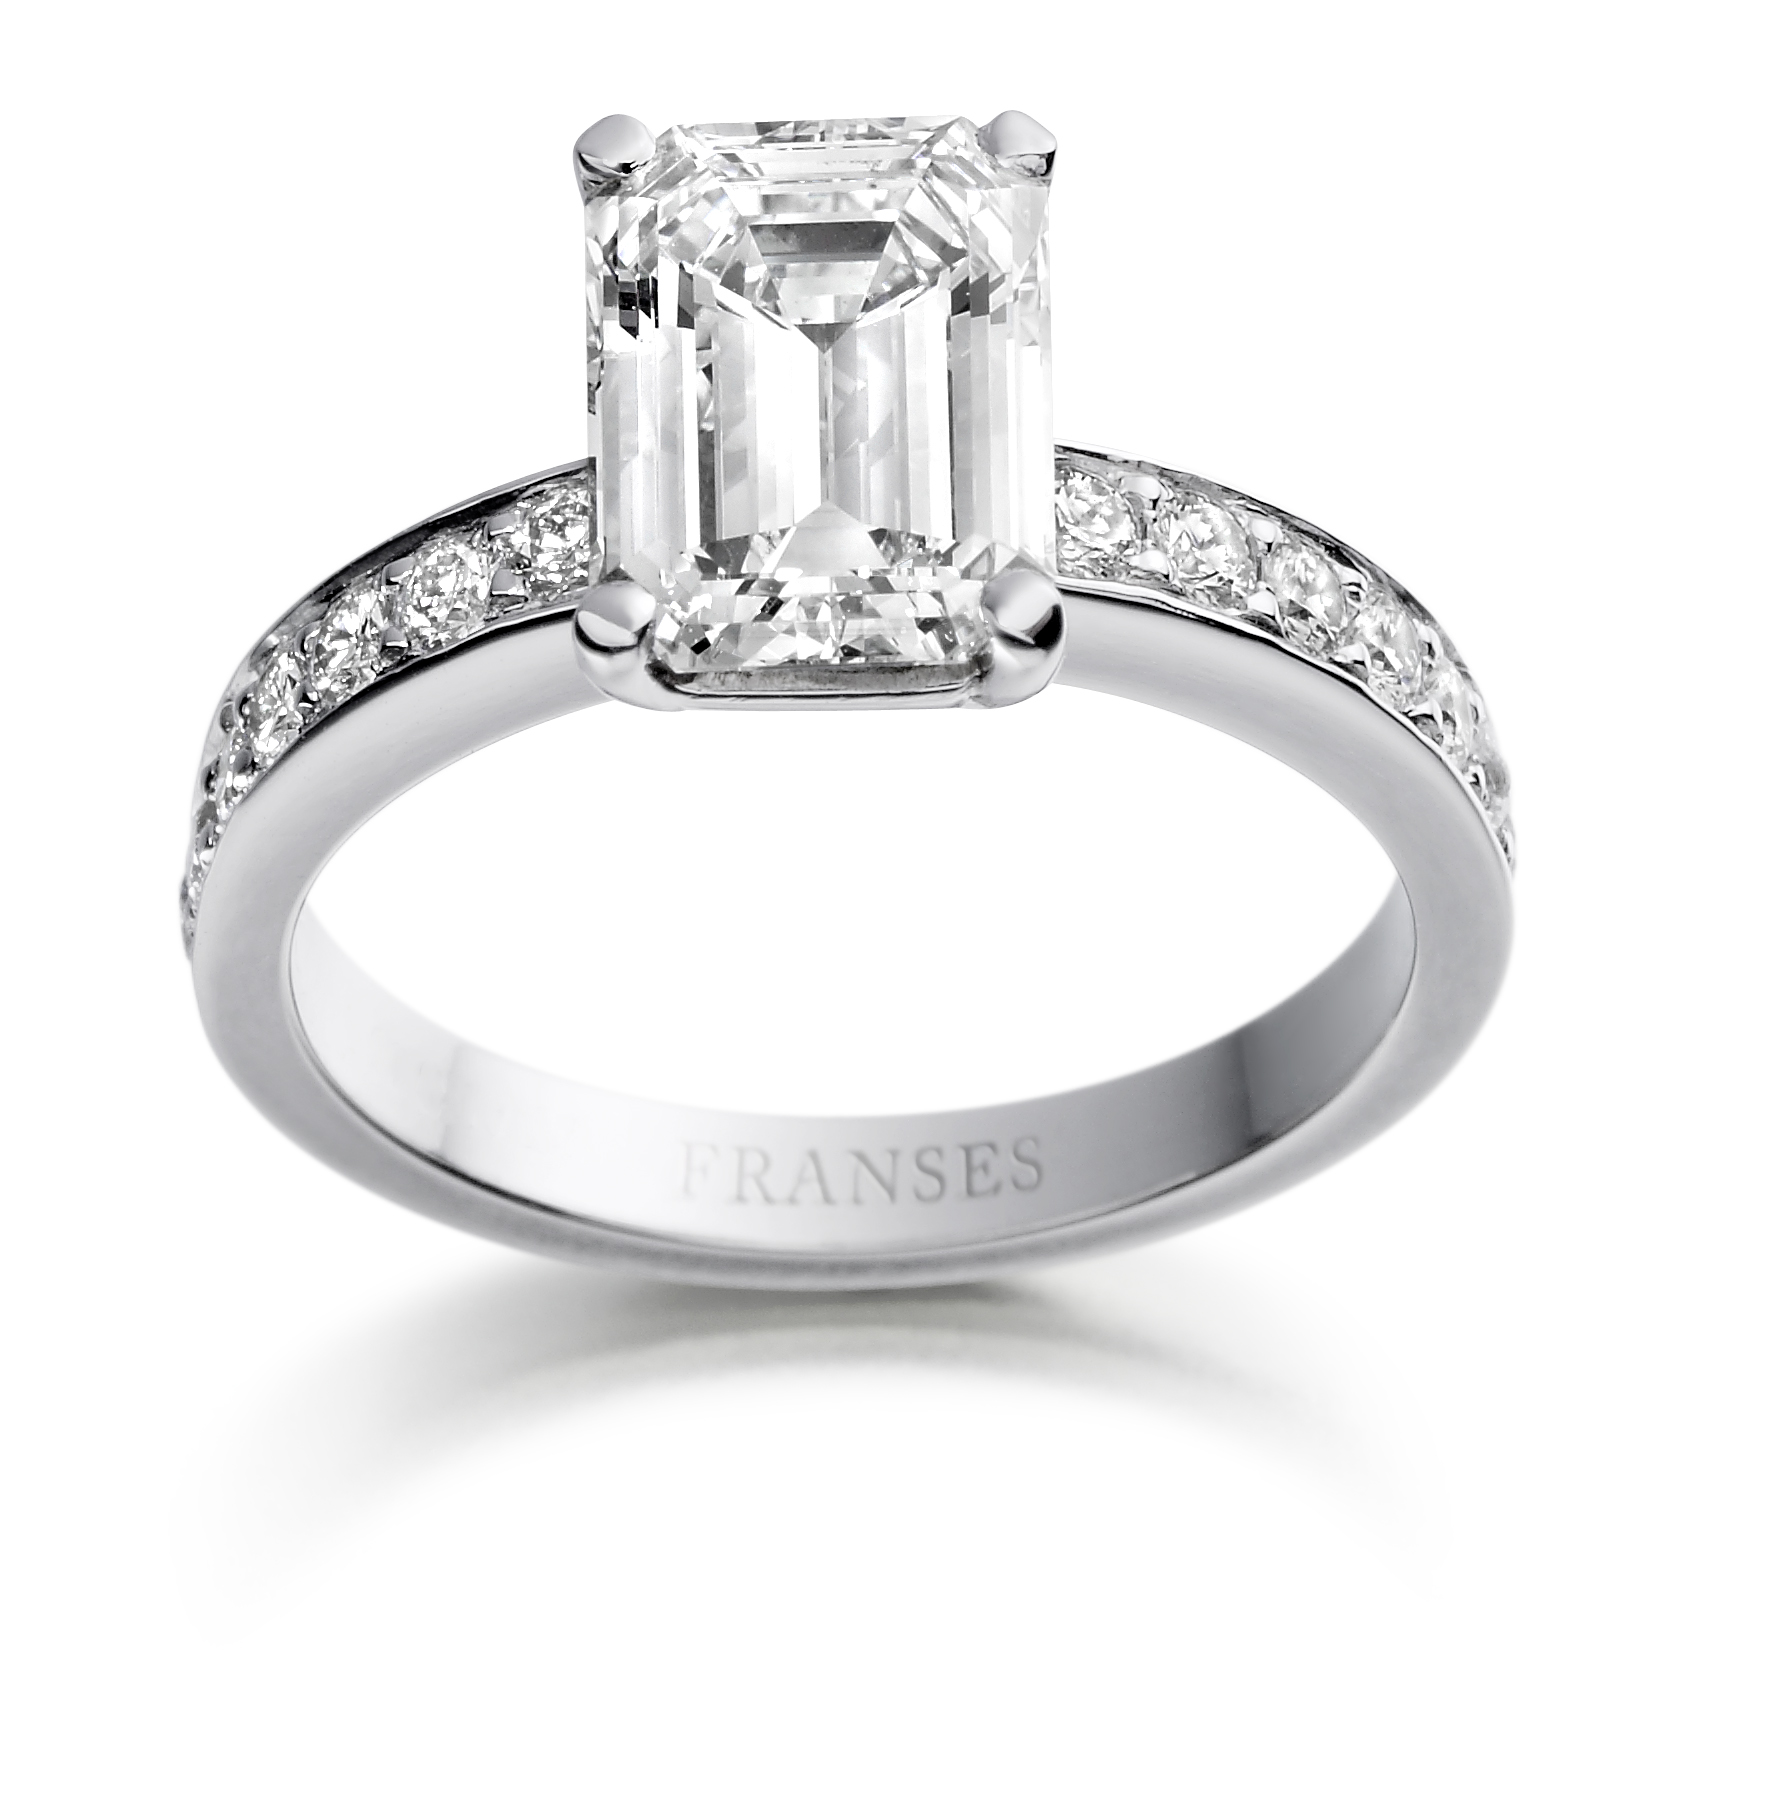 Platinum diamond ring - Emerald cut with diamond shoulders